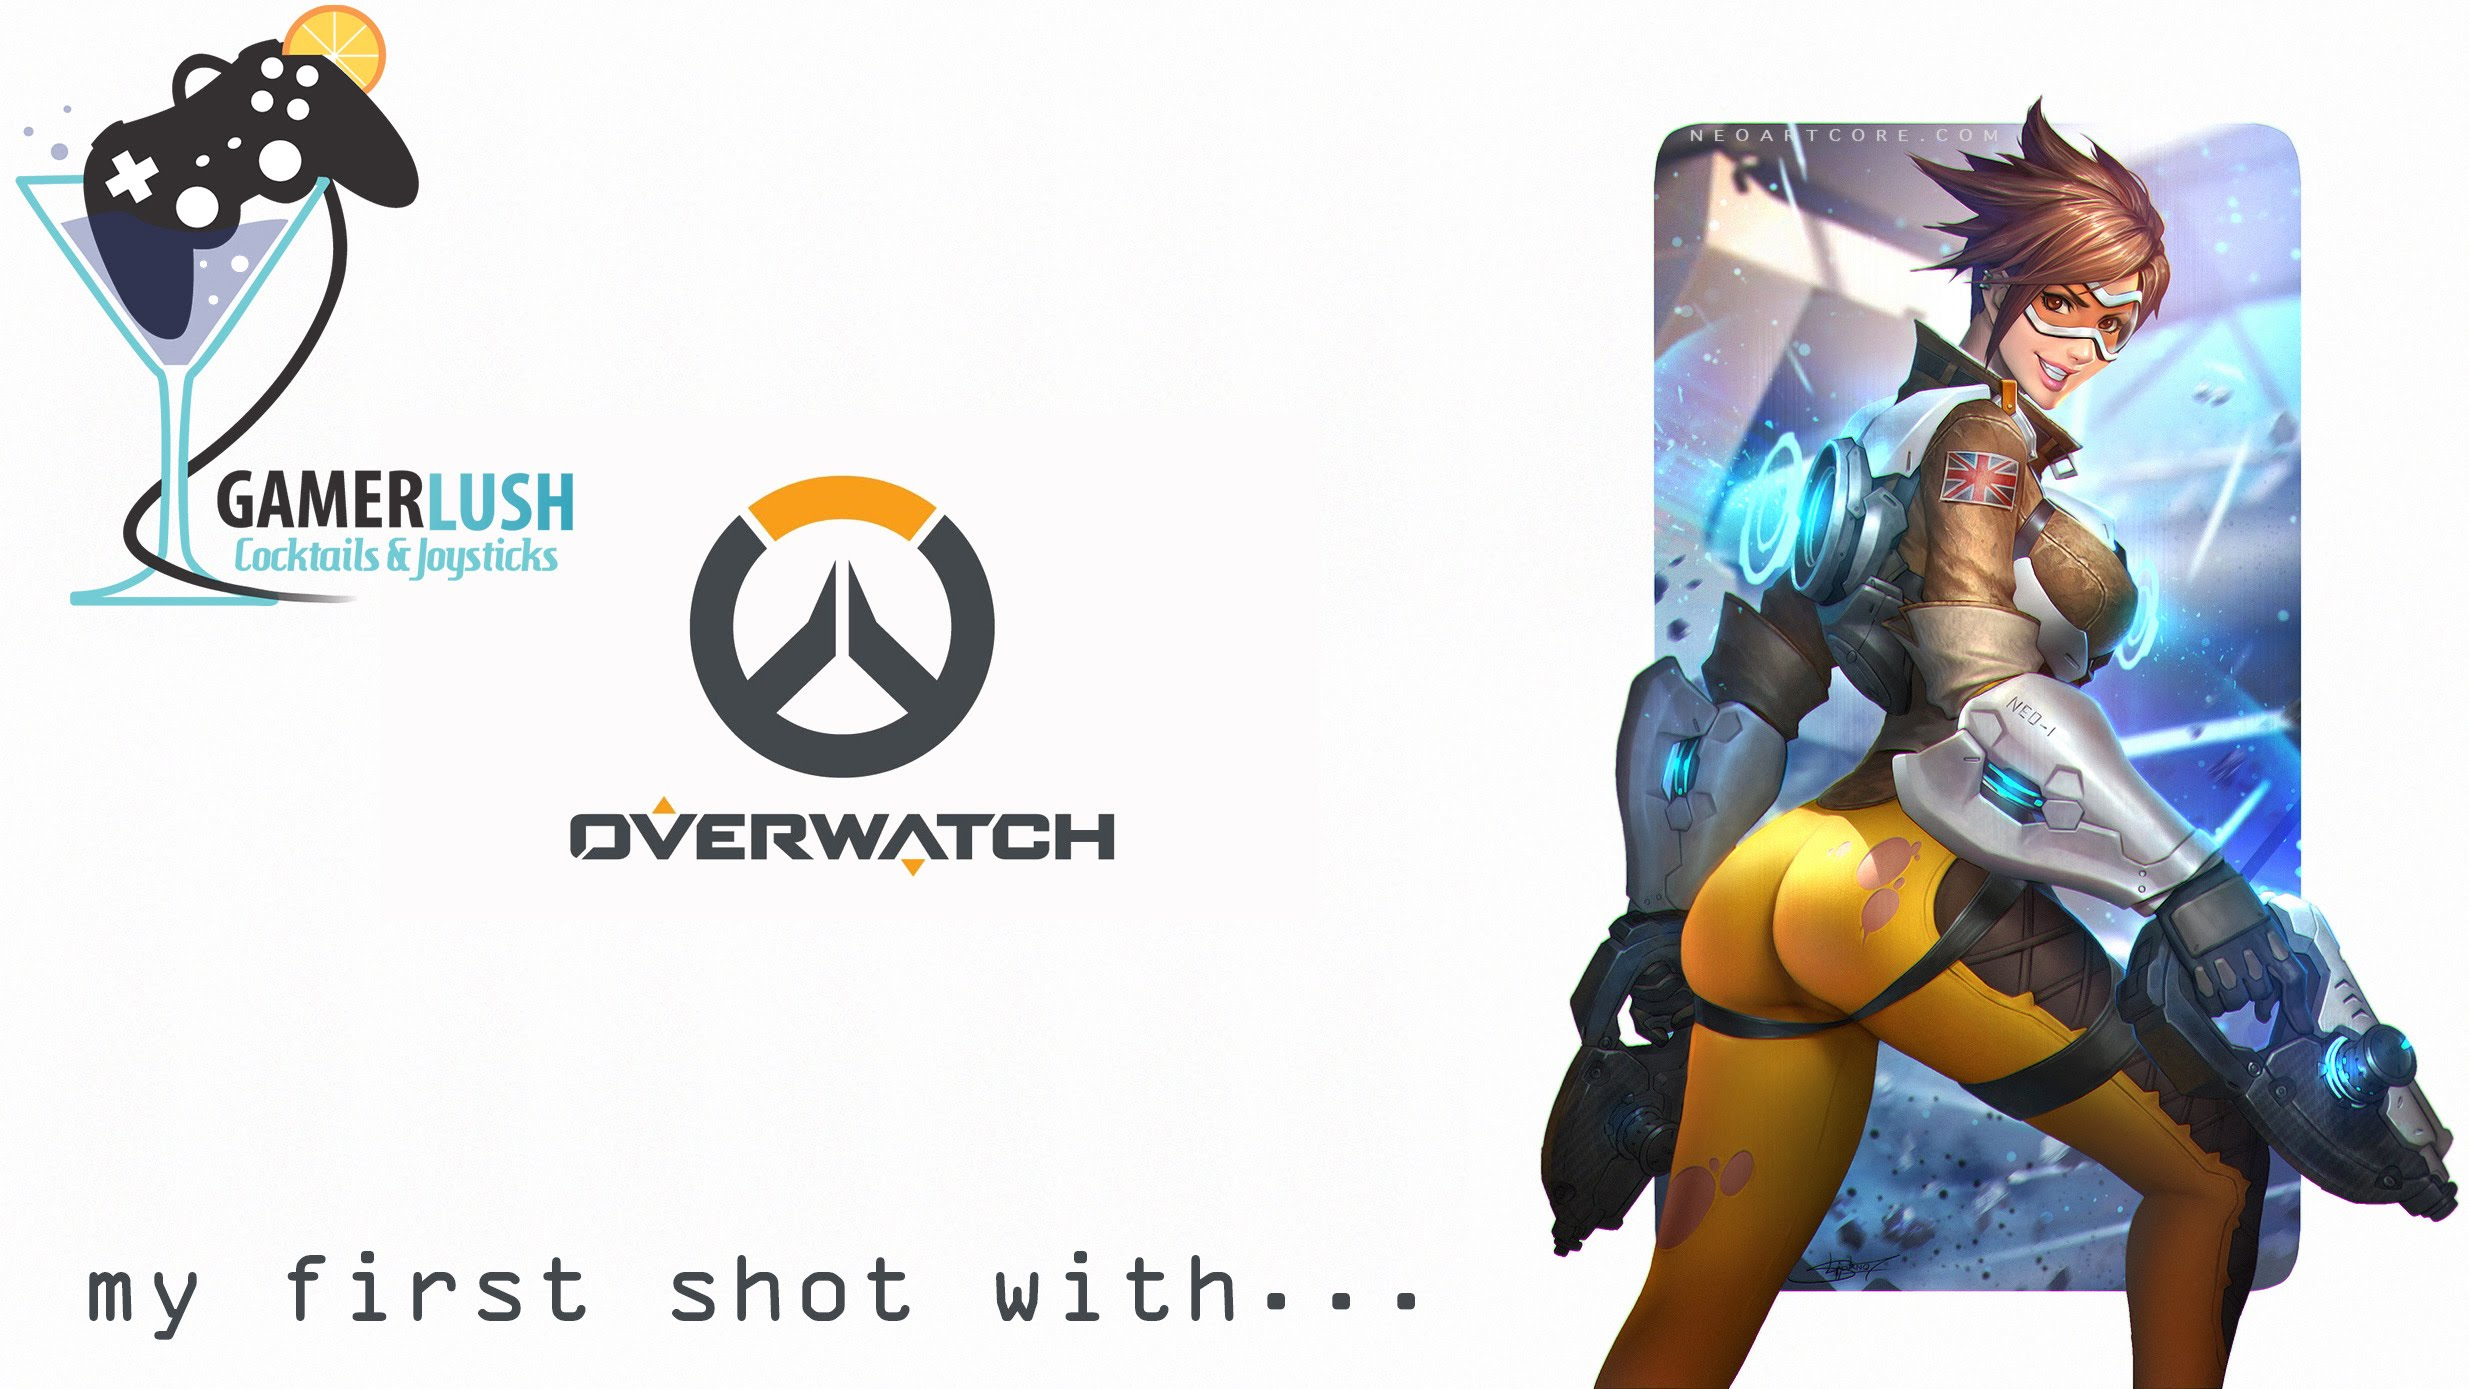 Hd overwatch clipart image transparent download Overwatch hd clipart - ClipartFest image transparent download